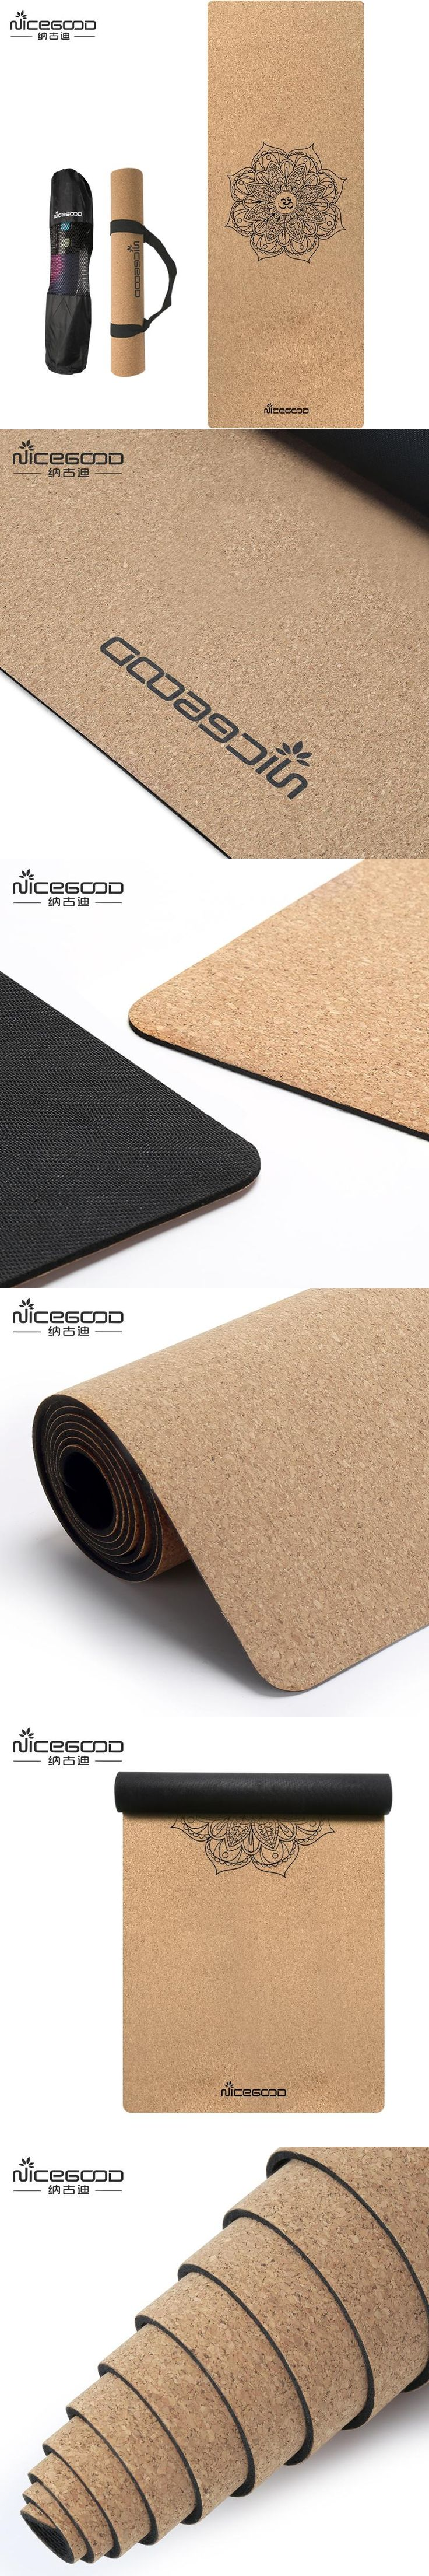 Basically Perfect Cork Yoga Mat w/ Natural Rubber, Non-Toxic, Non-Slip, Grips Even Better w/ Sweat at Hot Yoga